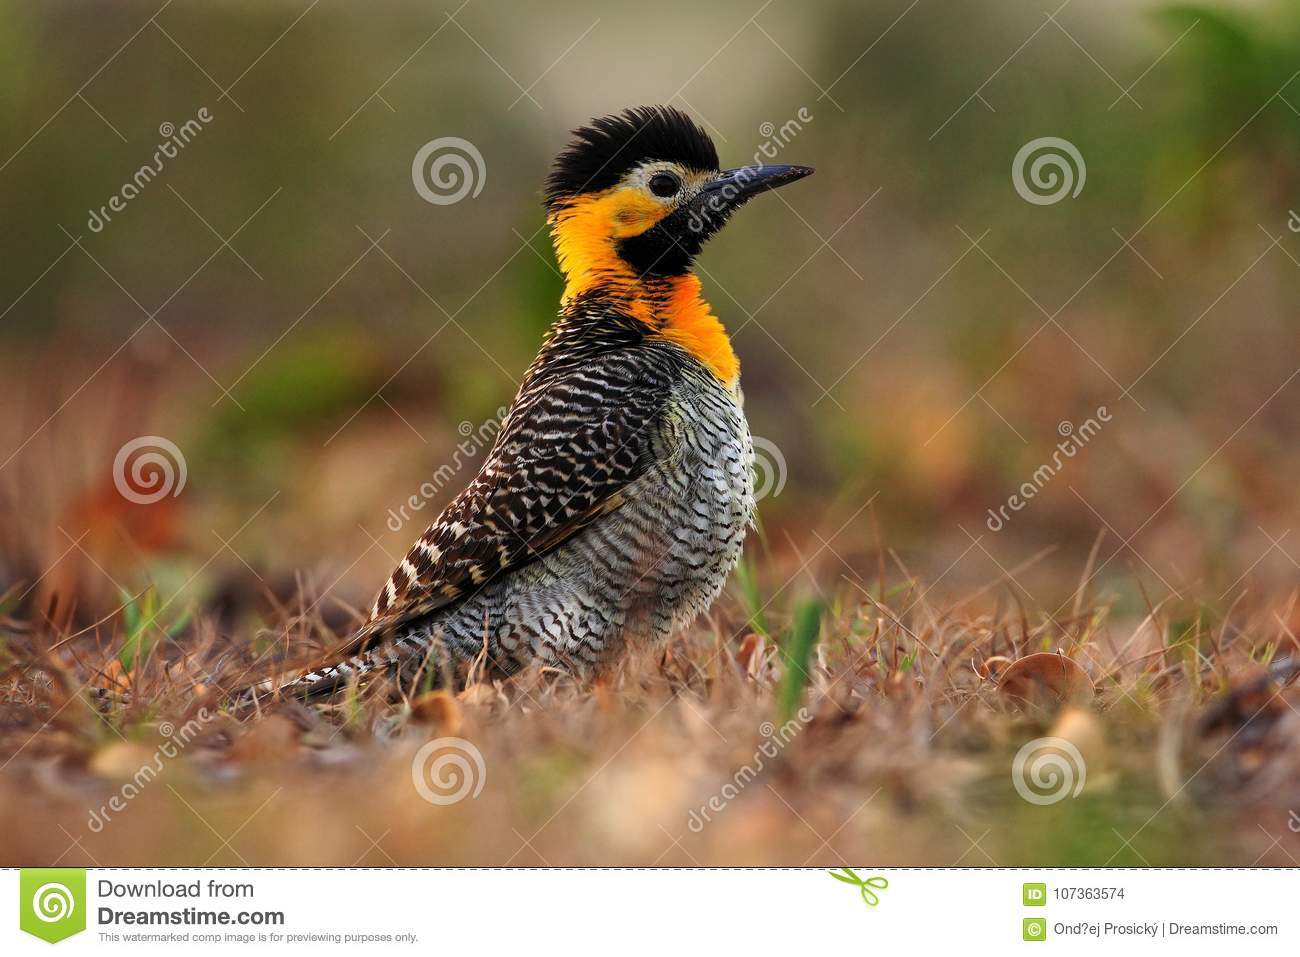 Campo Flicker, Colaptes campestris, exotic woodpecker in the nature habitat, bird sitting in the grass, yellow and black head, Mat